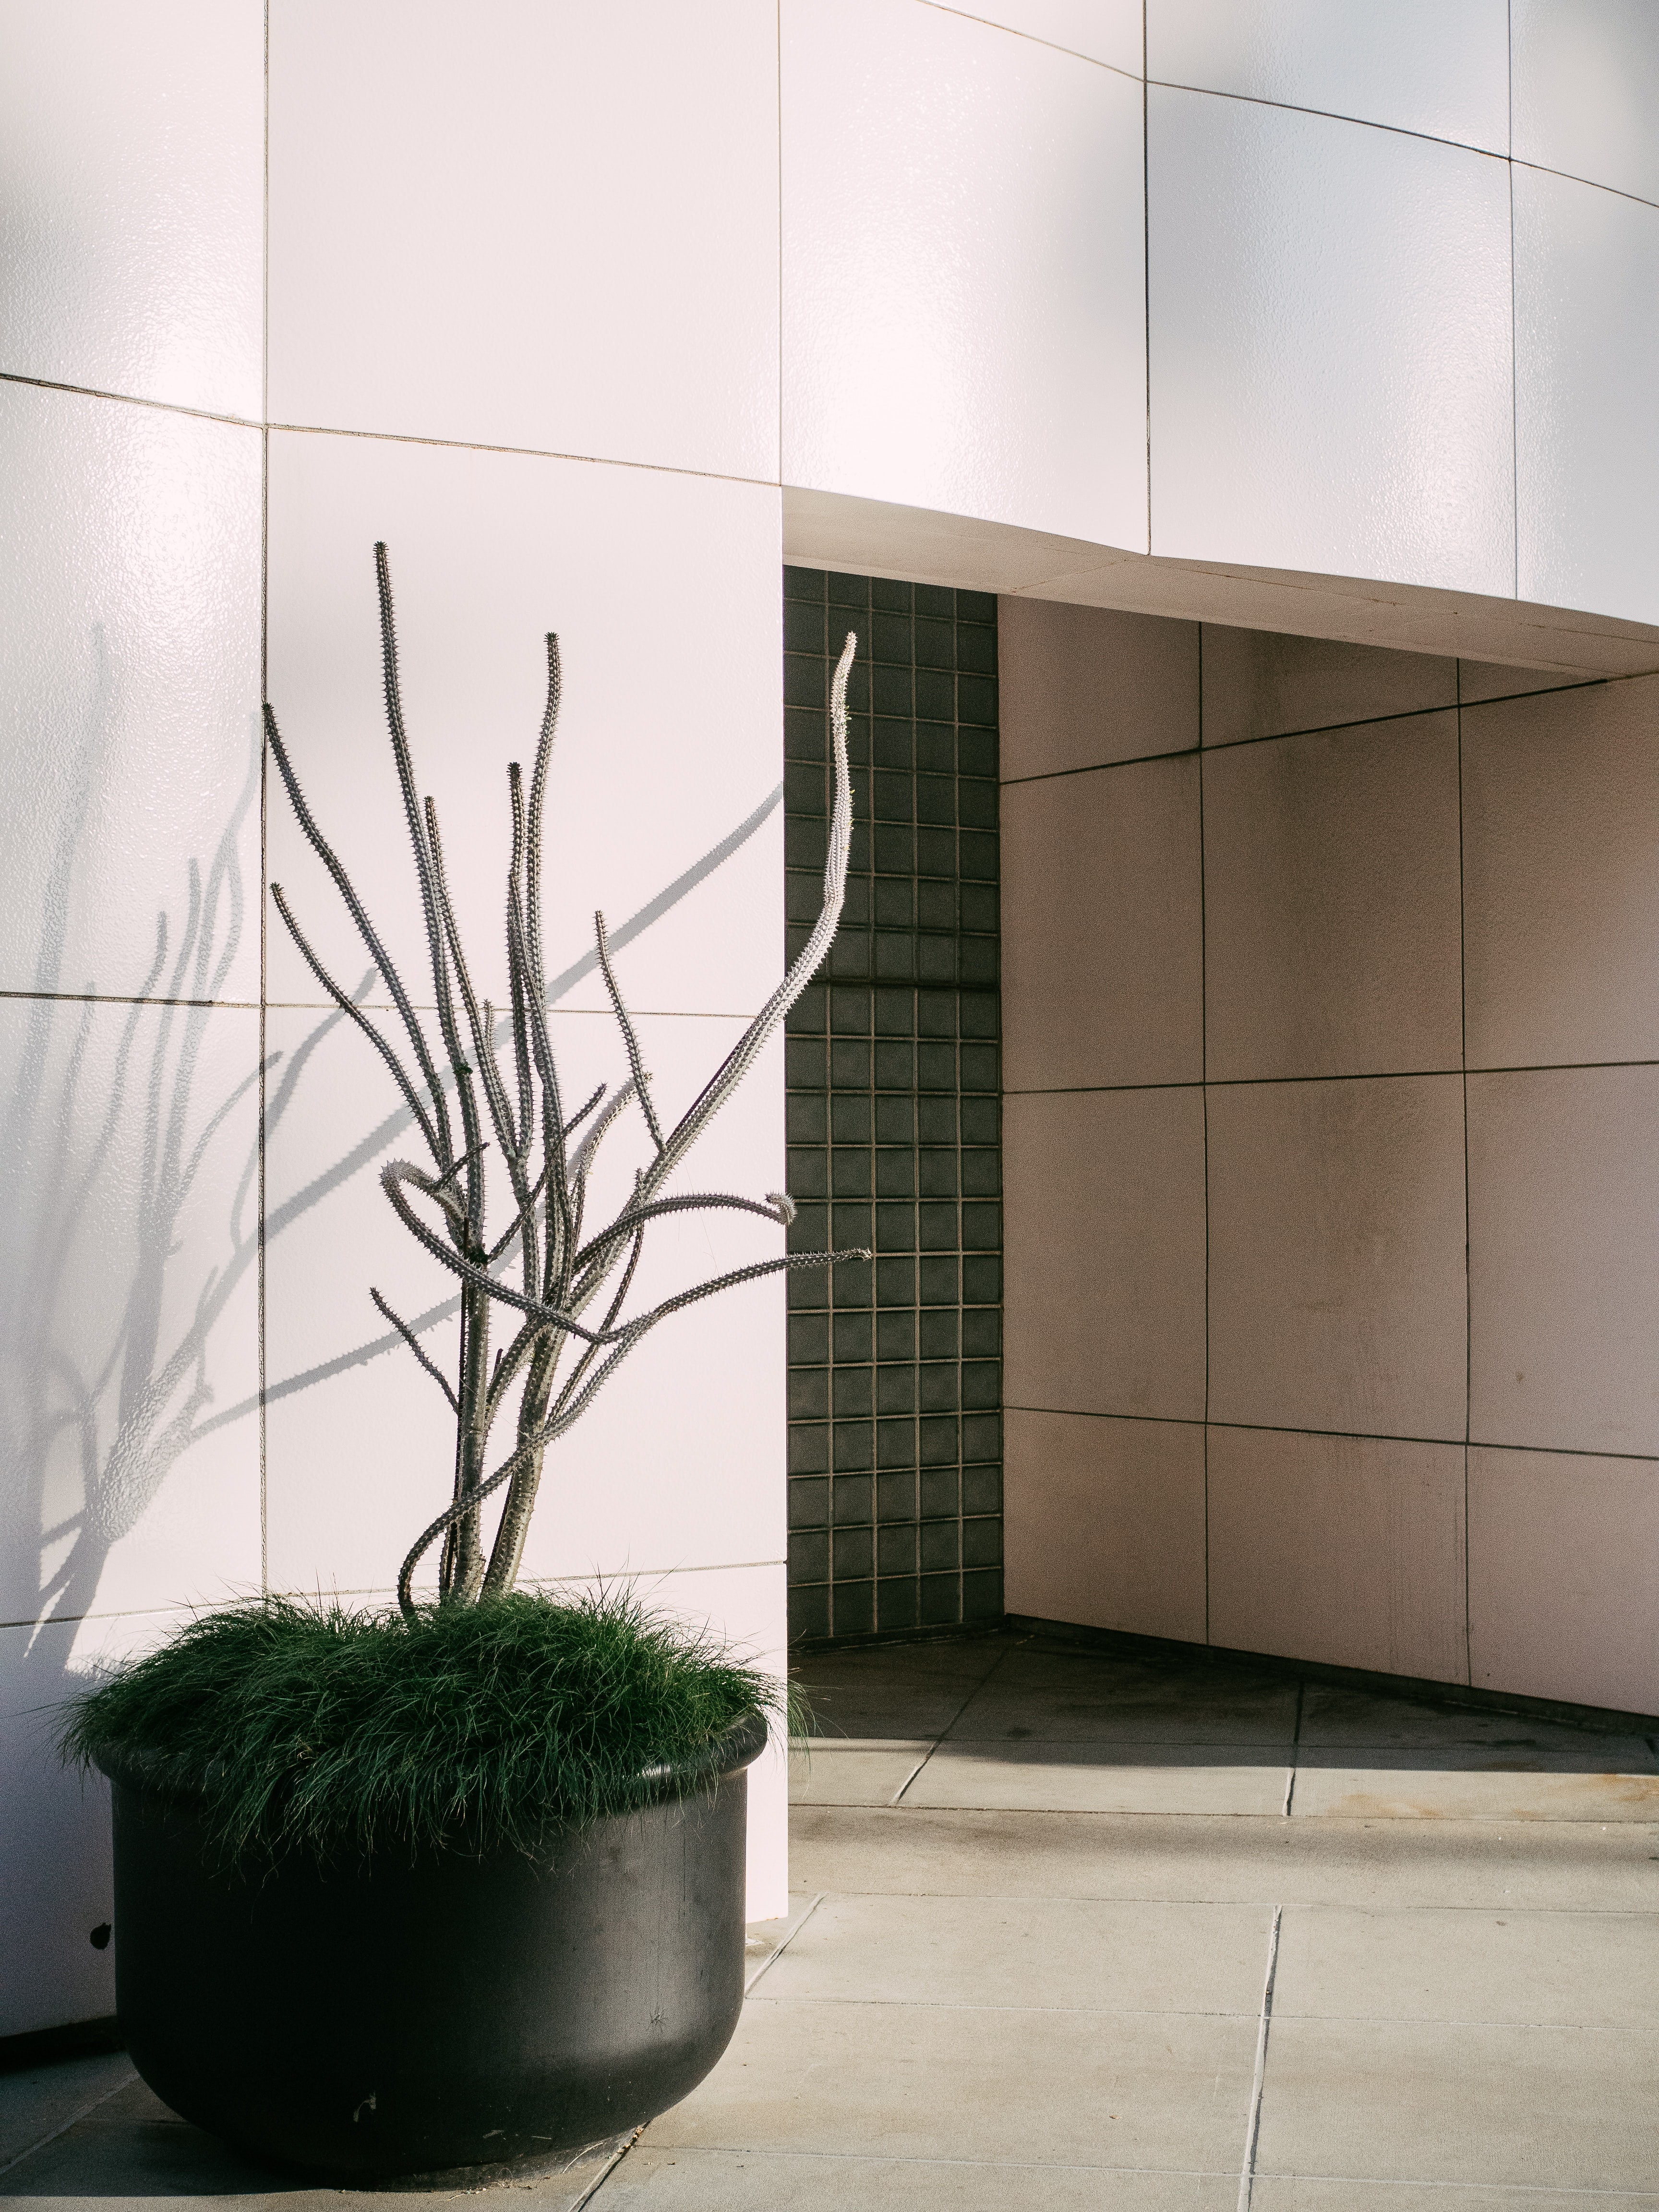 gray plant decor outside building